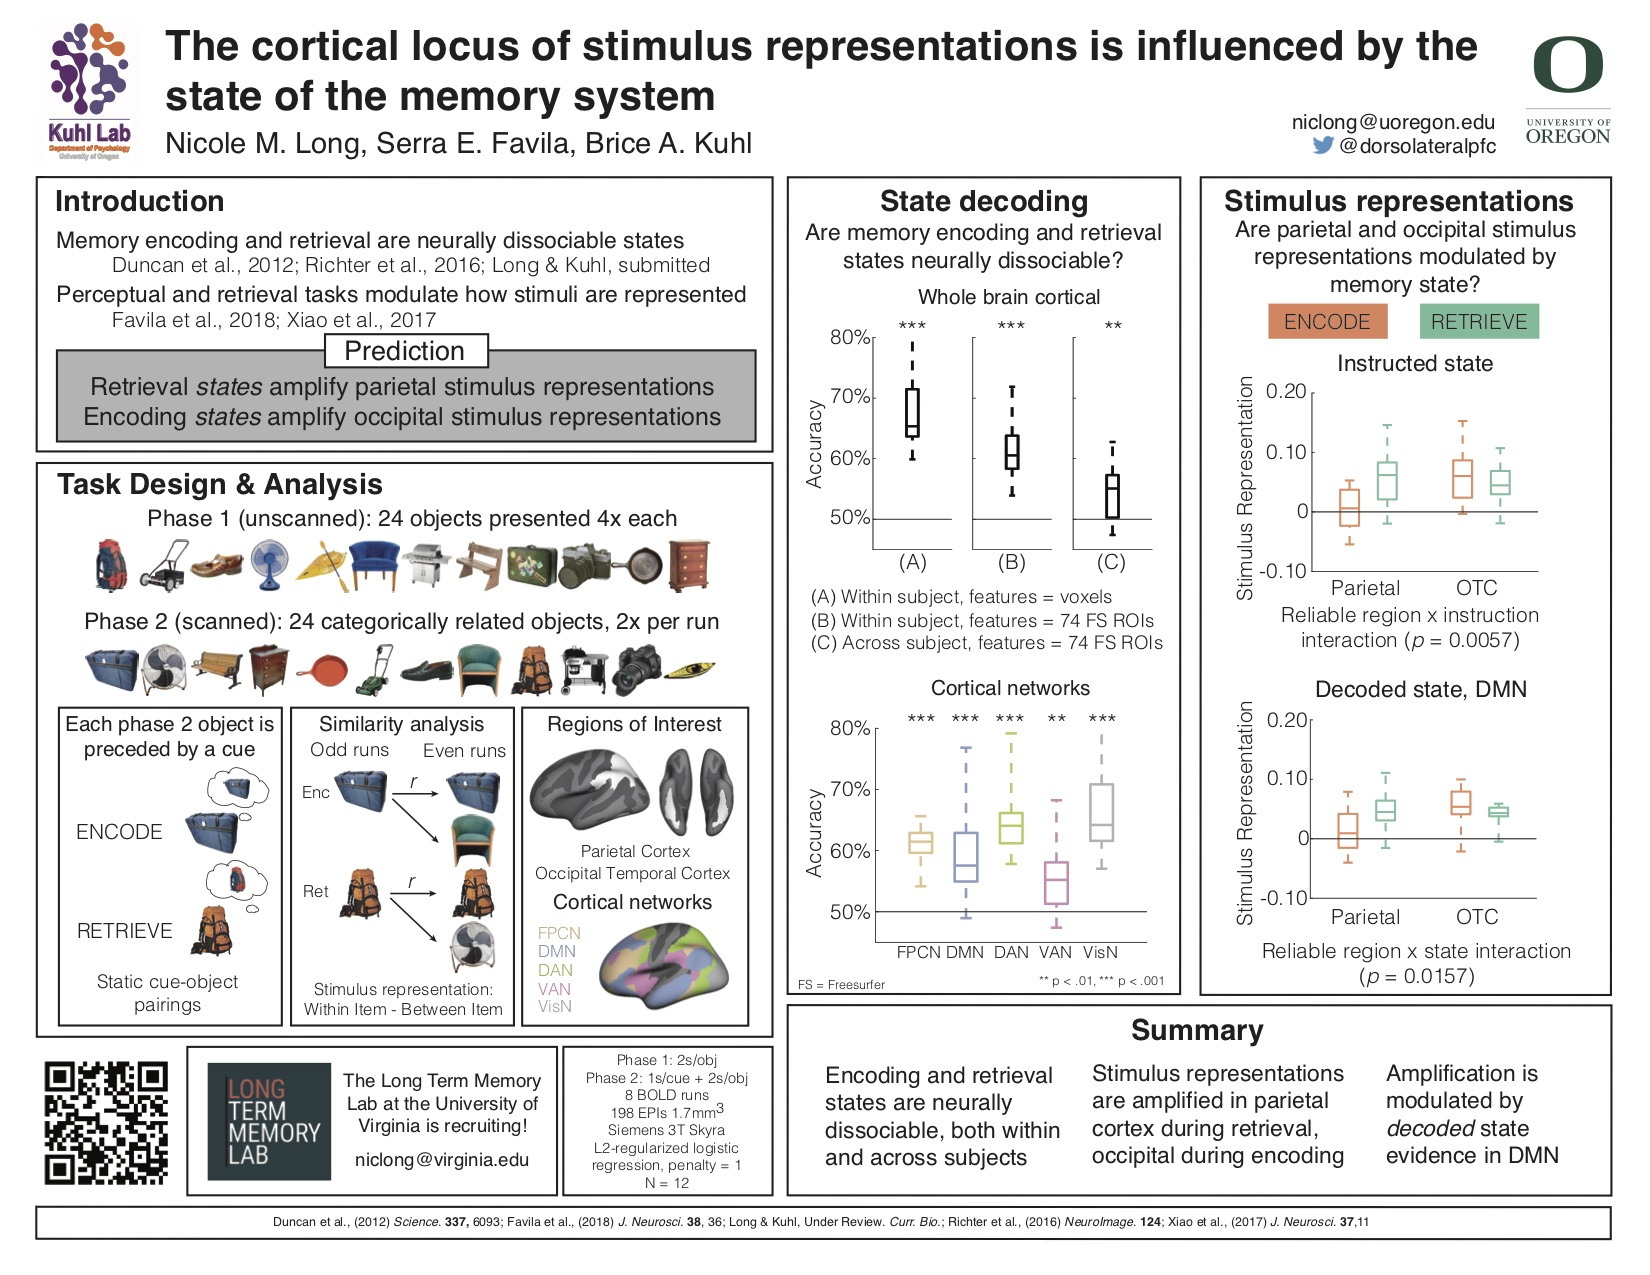 The cortical locus of stimulus representations is influenced by the state of the memory system